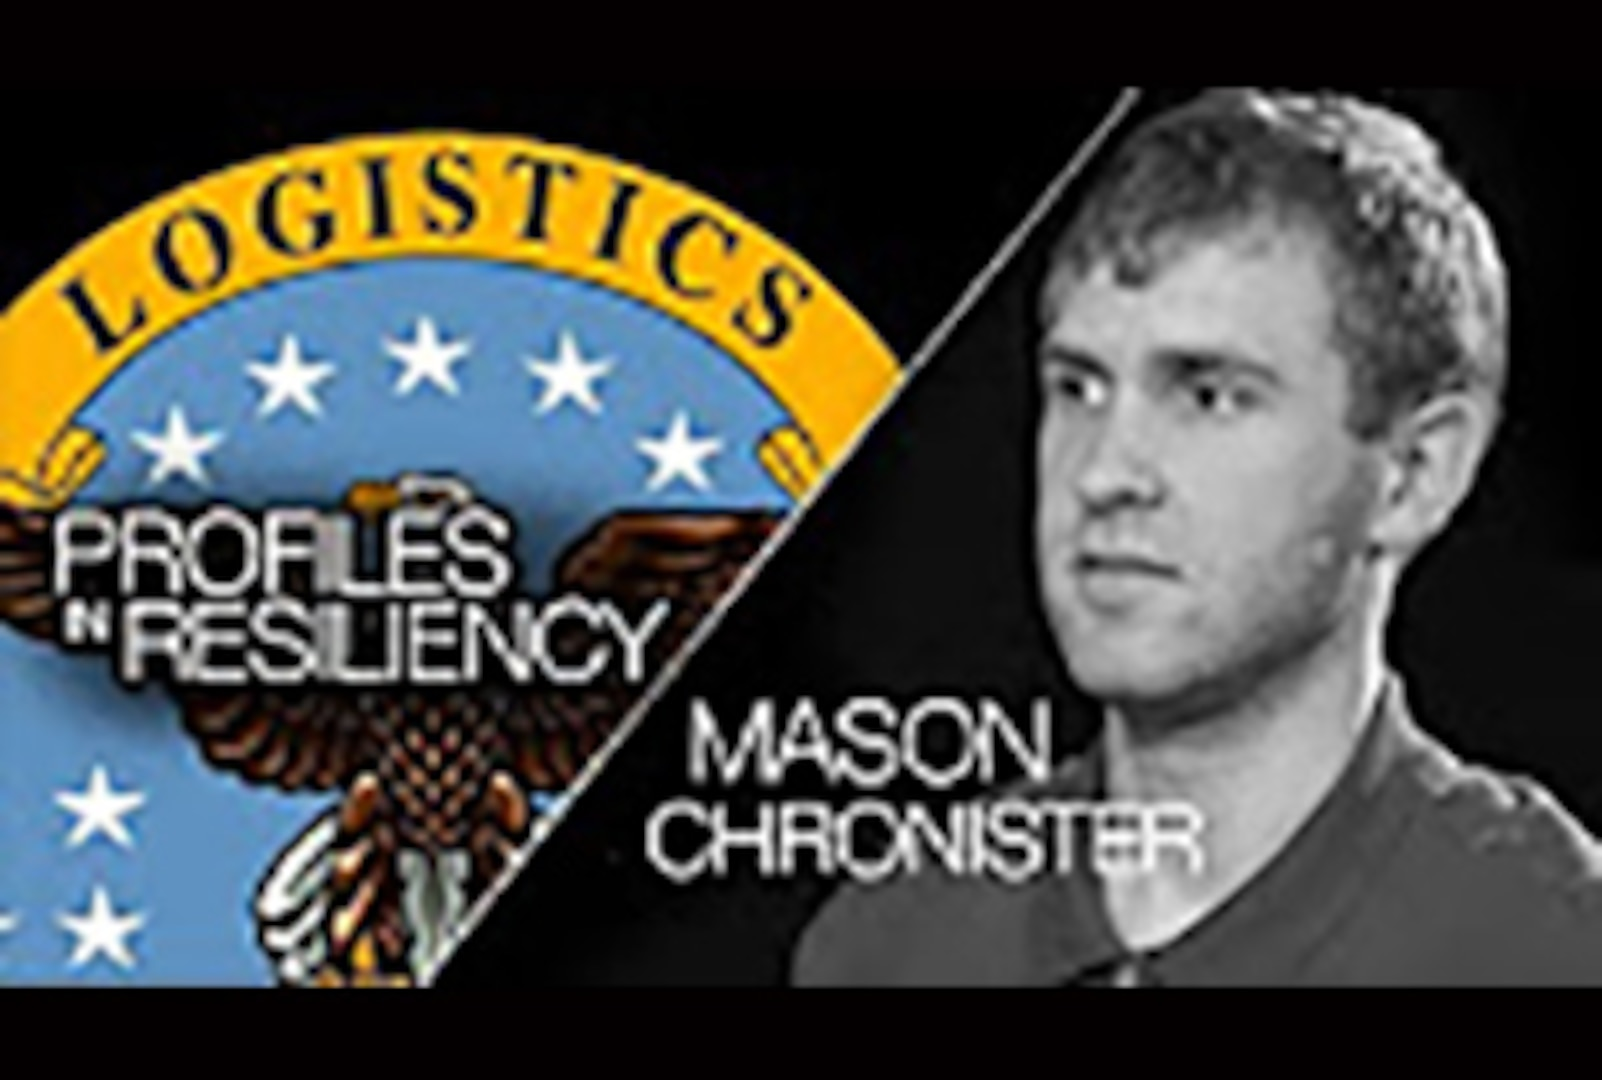 Chronister's resiliency story is featured in a brief video.